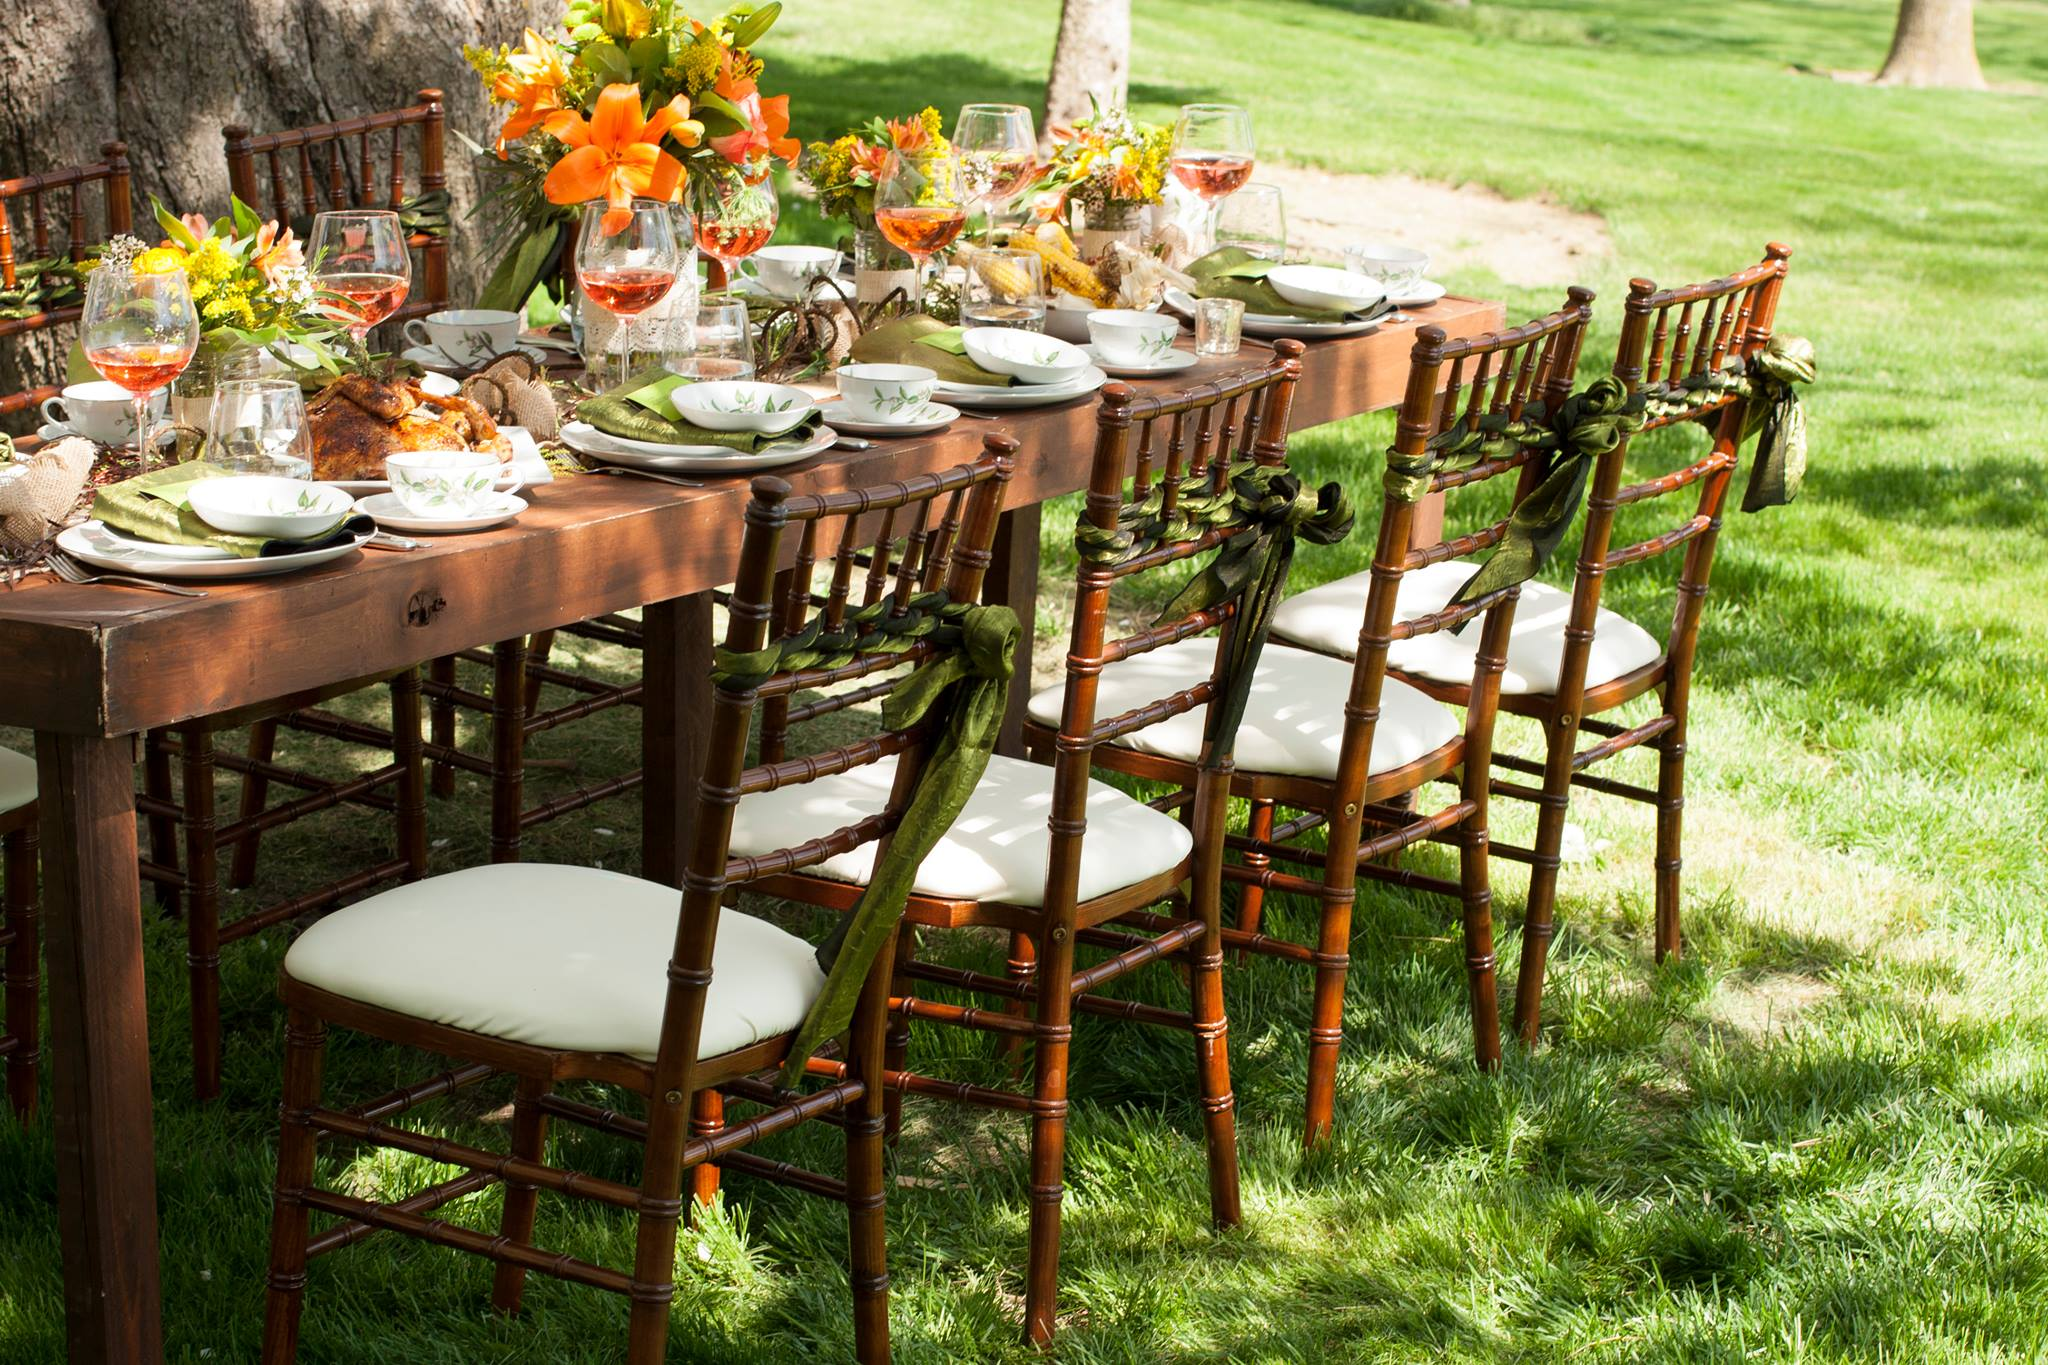 Farm Table and Chiavari Chairs